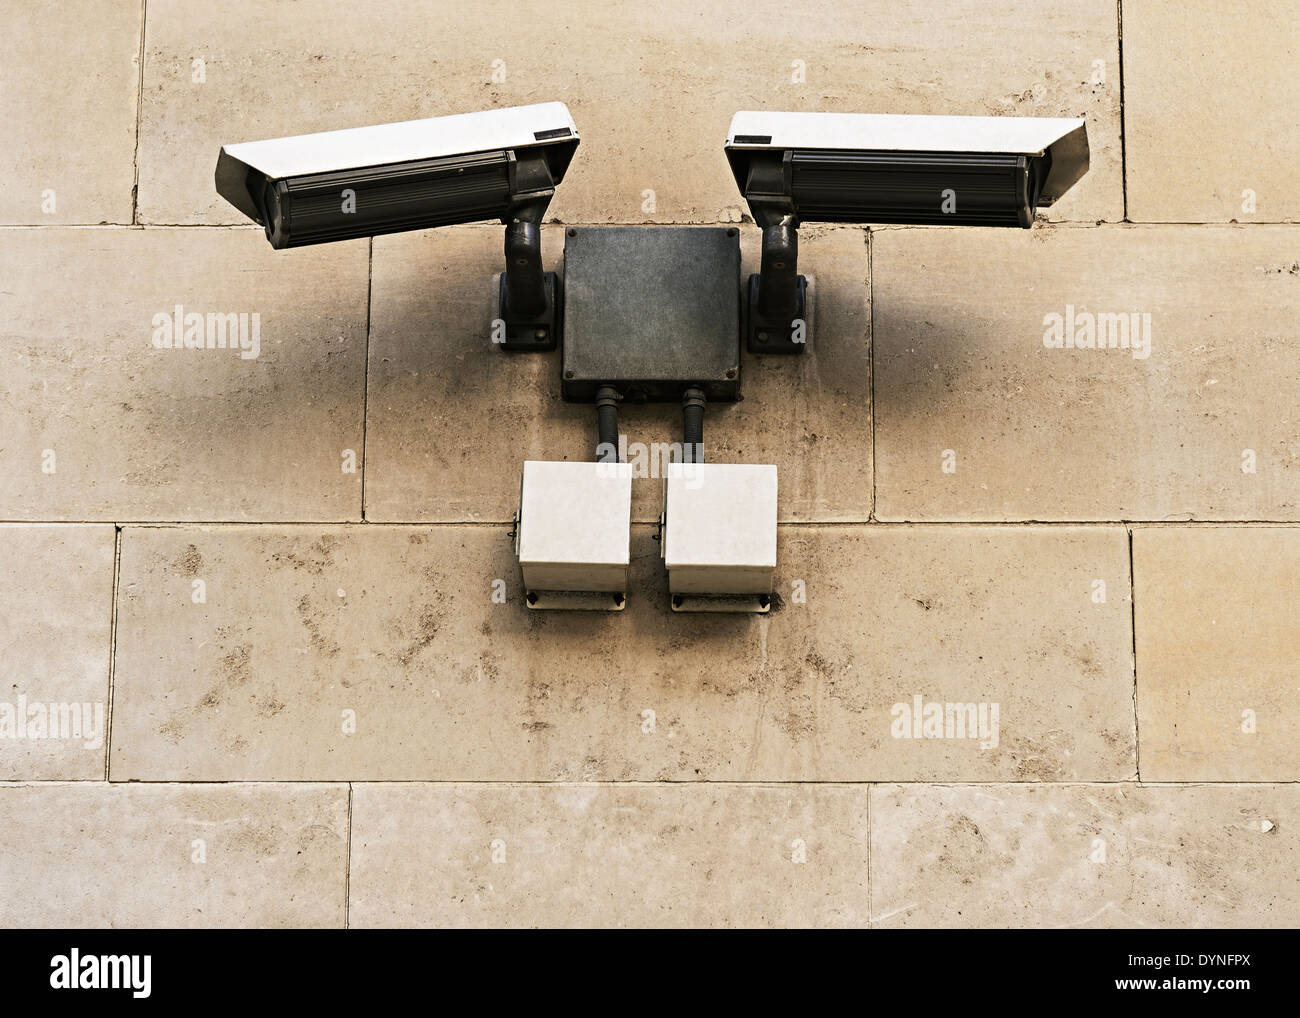 CCTV-Überwachungskameras, Wandmontage, London, UK. Stockbild